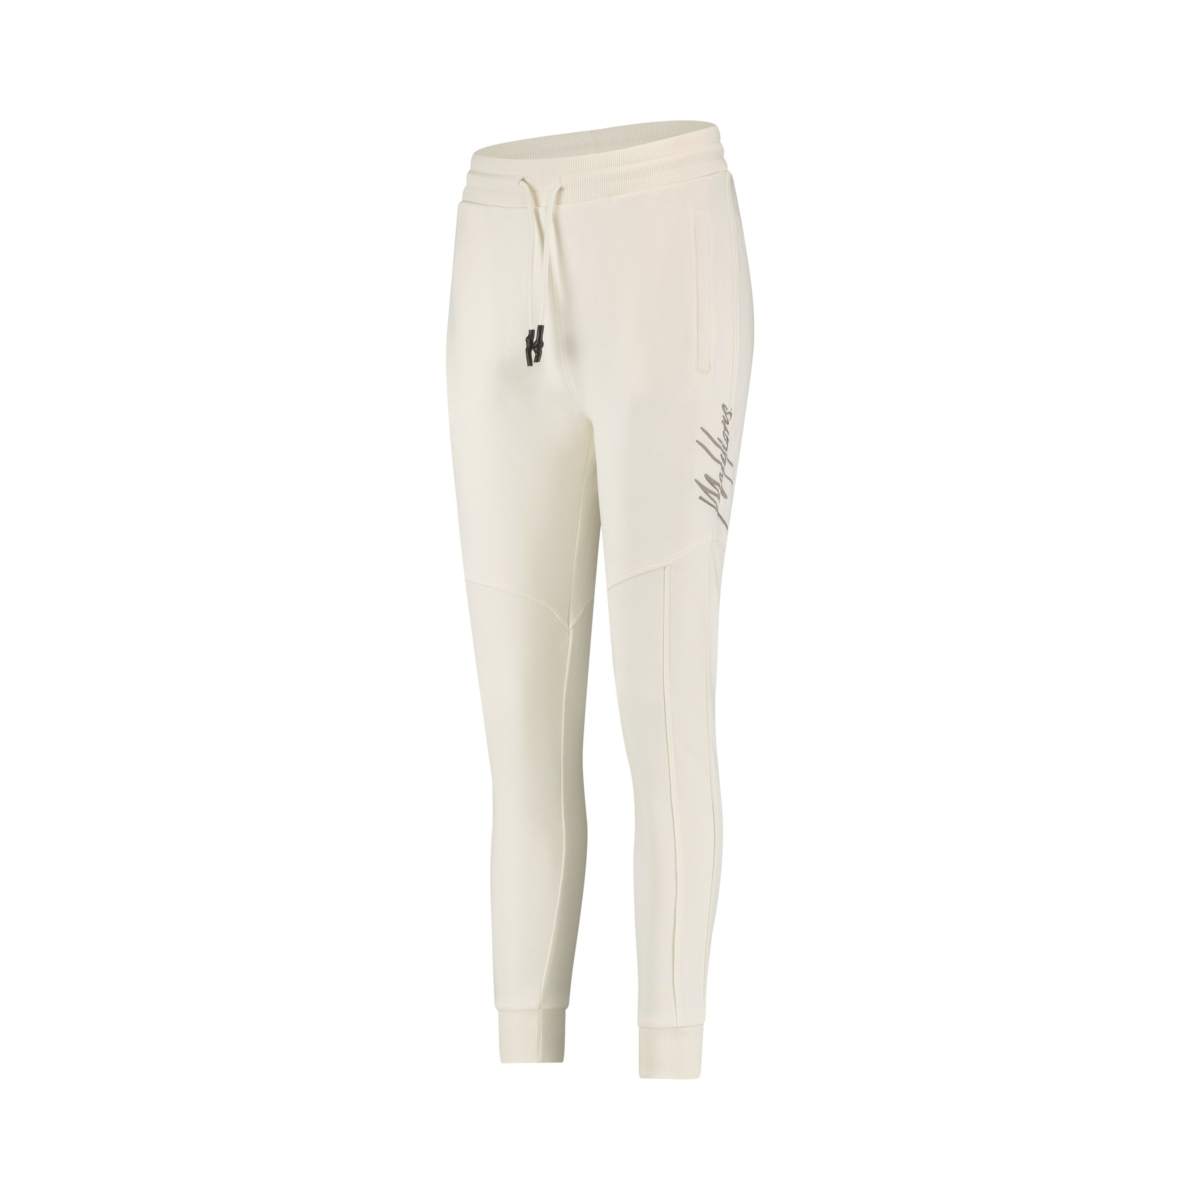 Malelions Essentials Trackpants off white / grey logo New